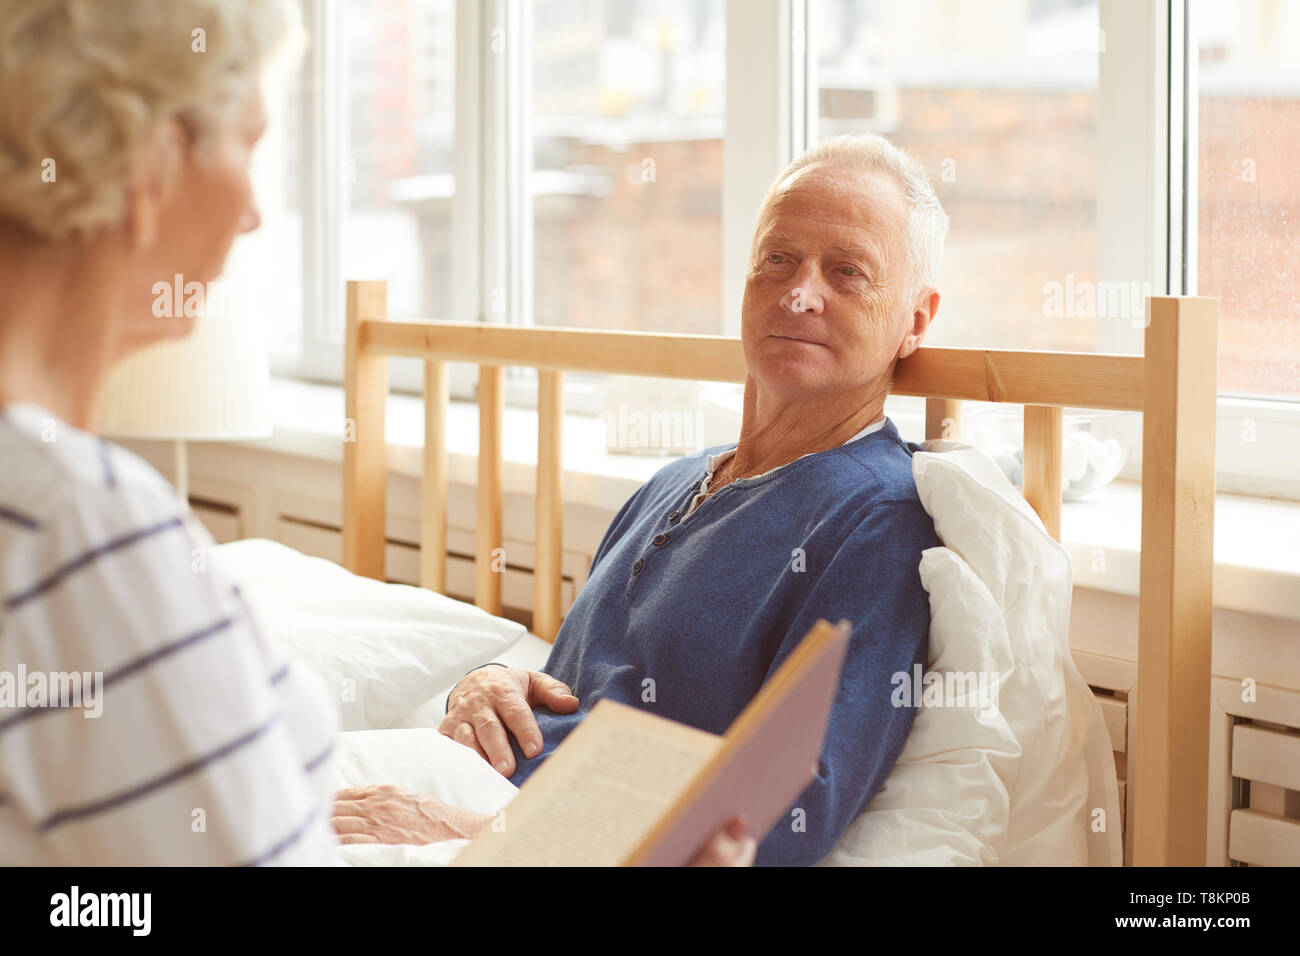 Senior Man in Recovery - Stock Image